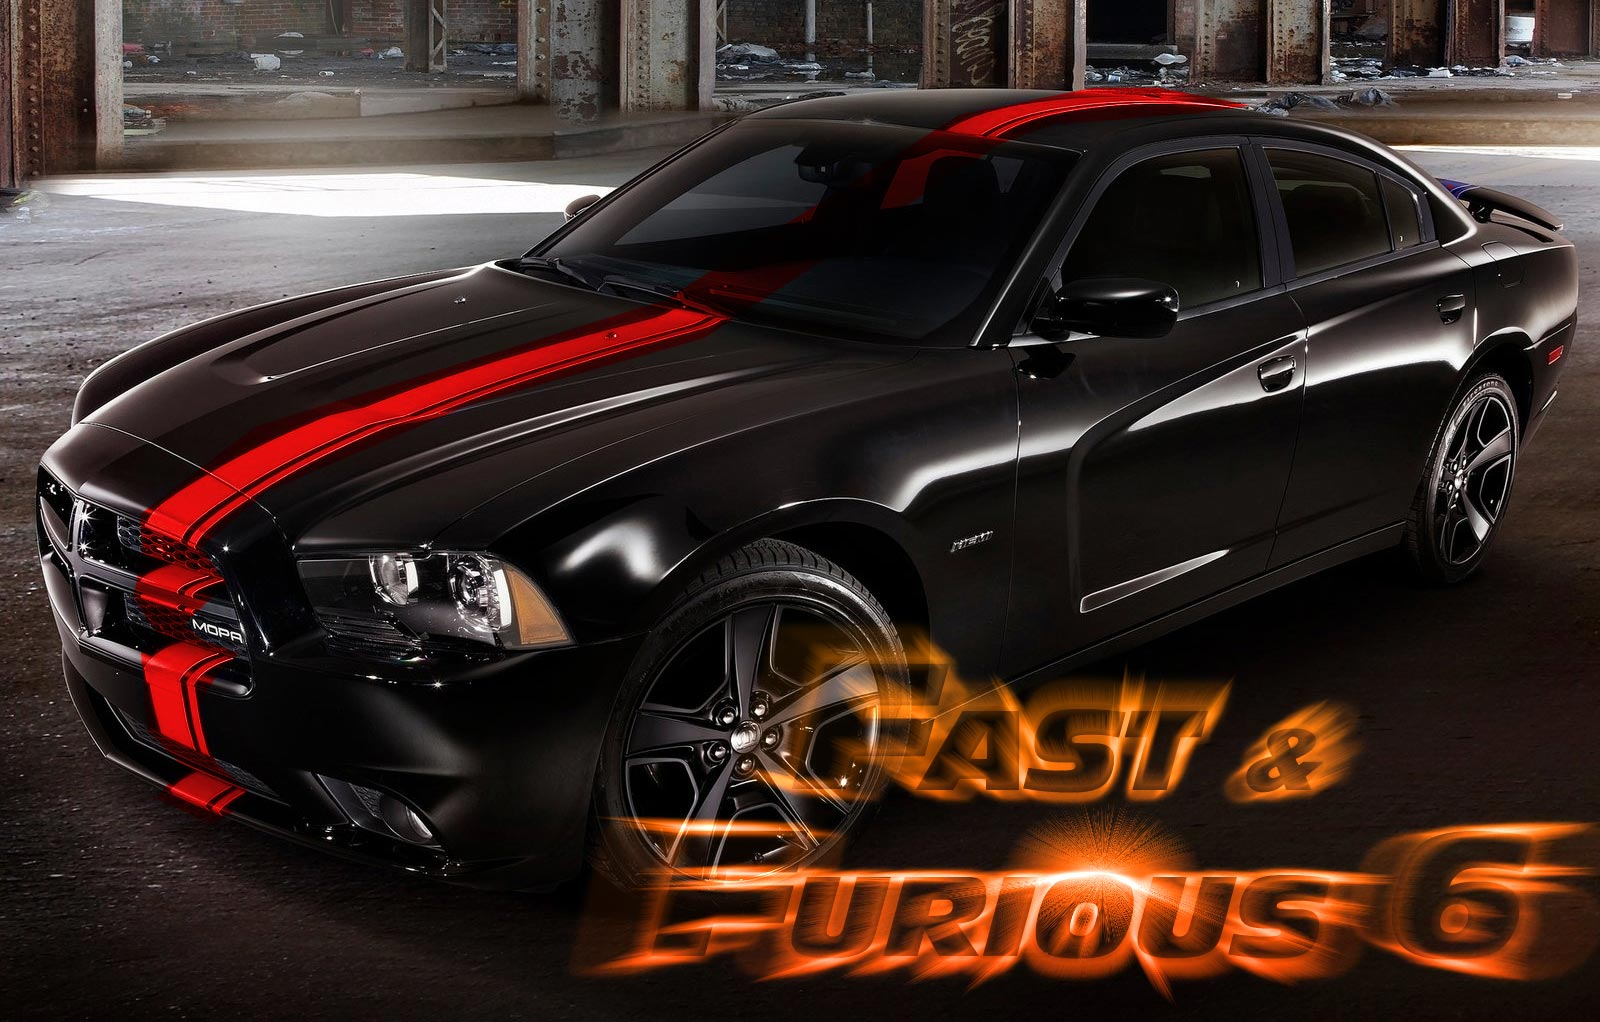 Pics Photos   Fast And Furious Fast Furious Wallpaper 1600x1022